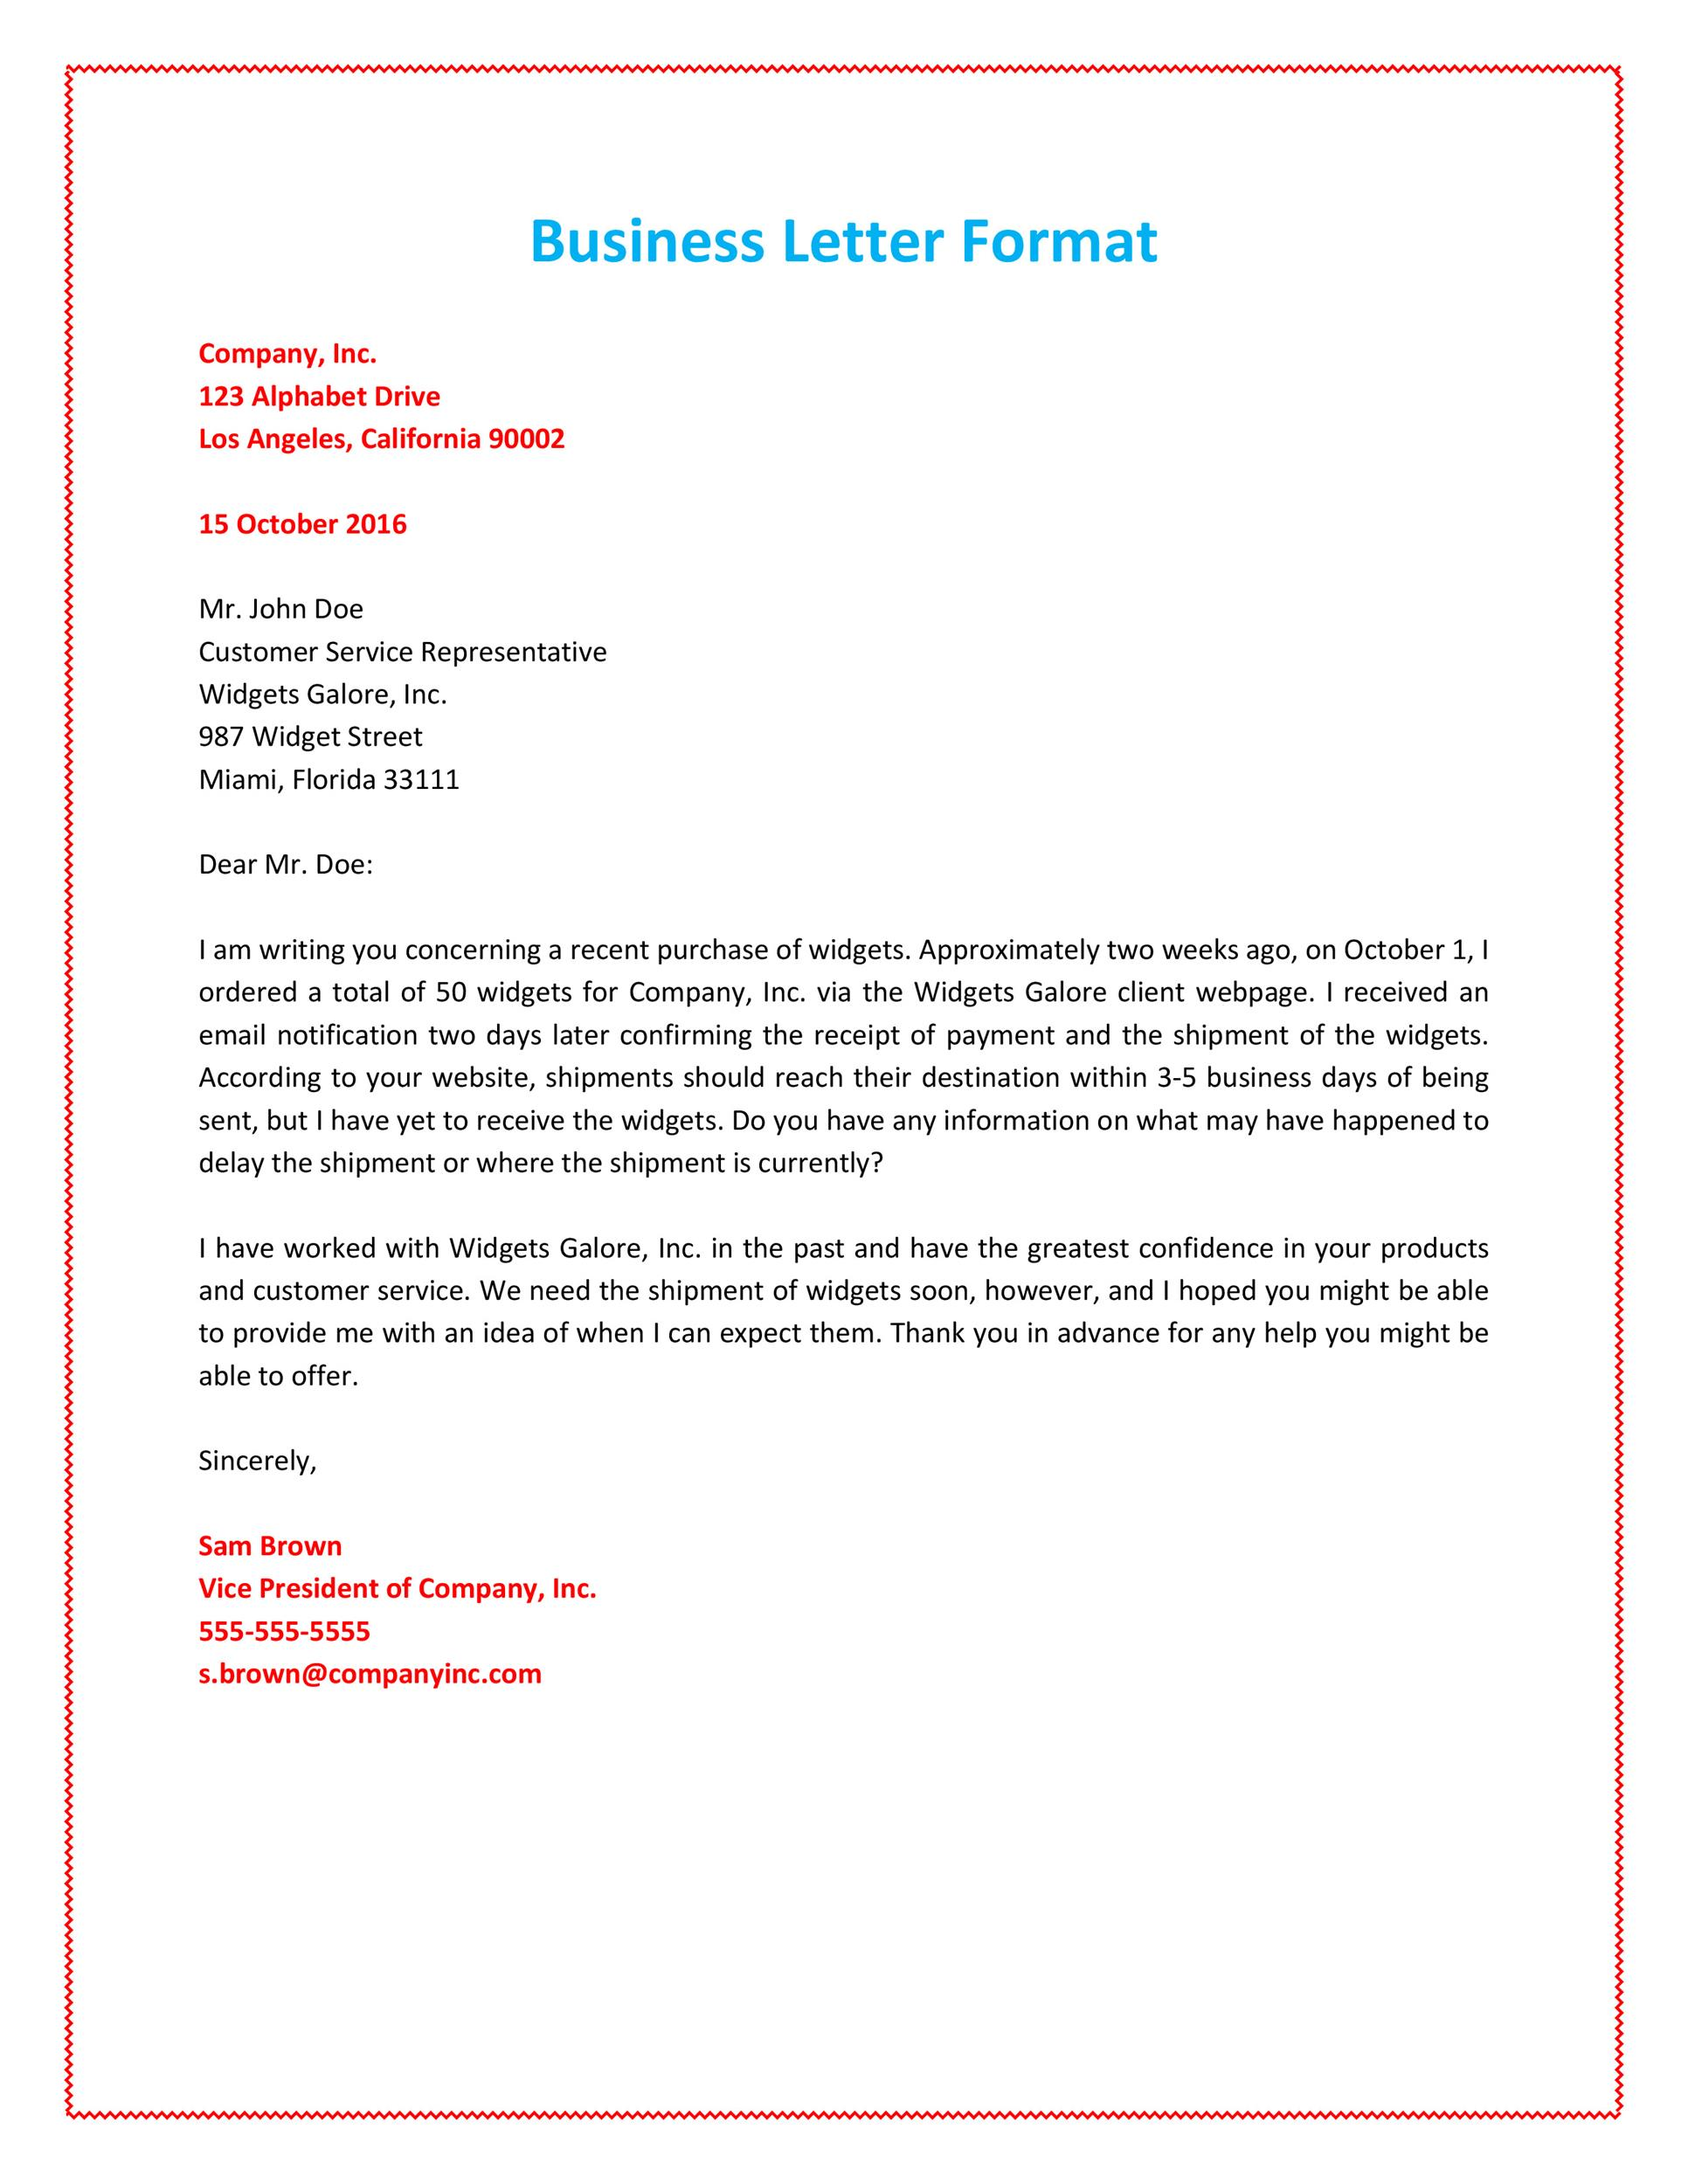 35 formal business letter format templates examples template lab business letter format example flashek Images